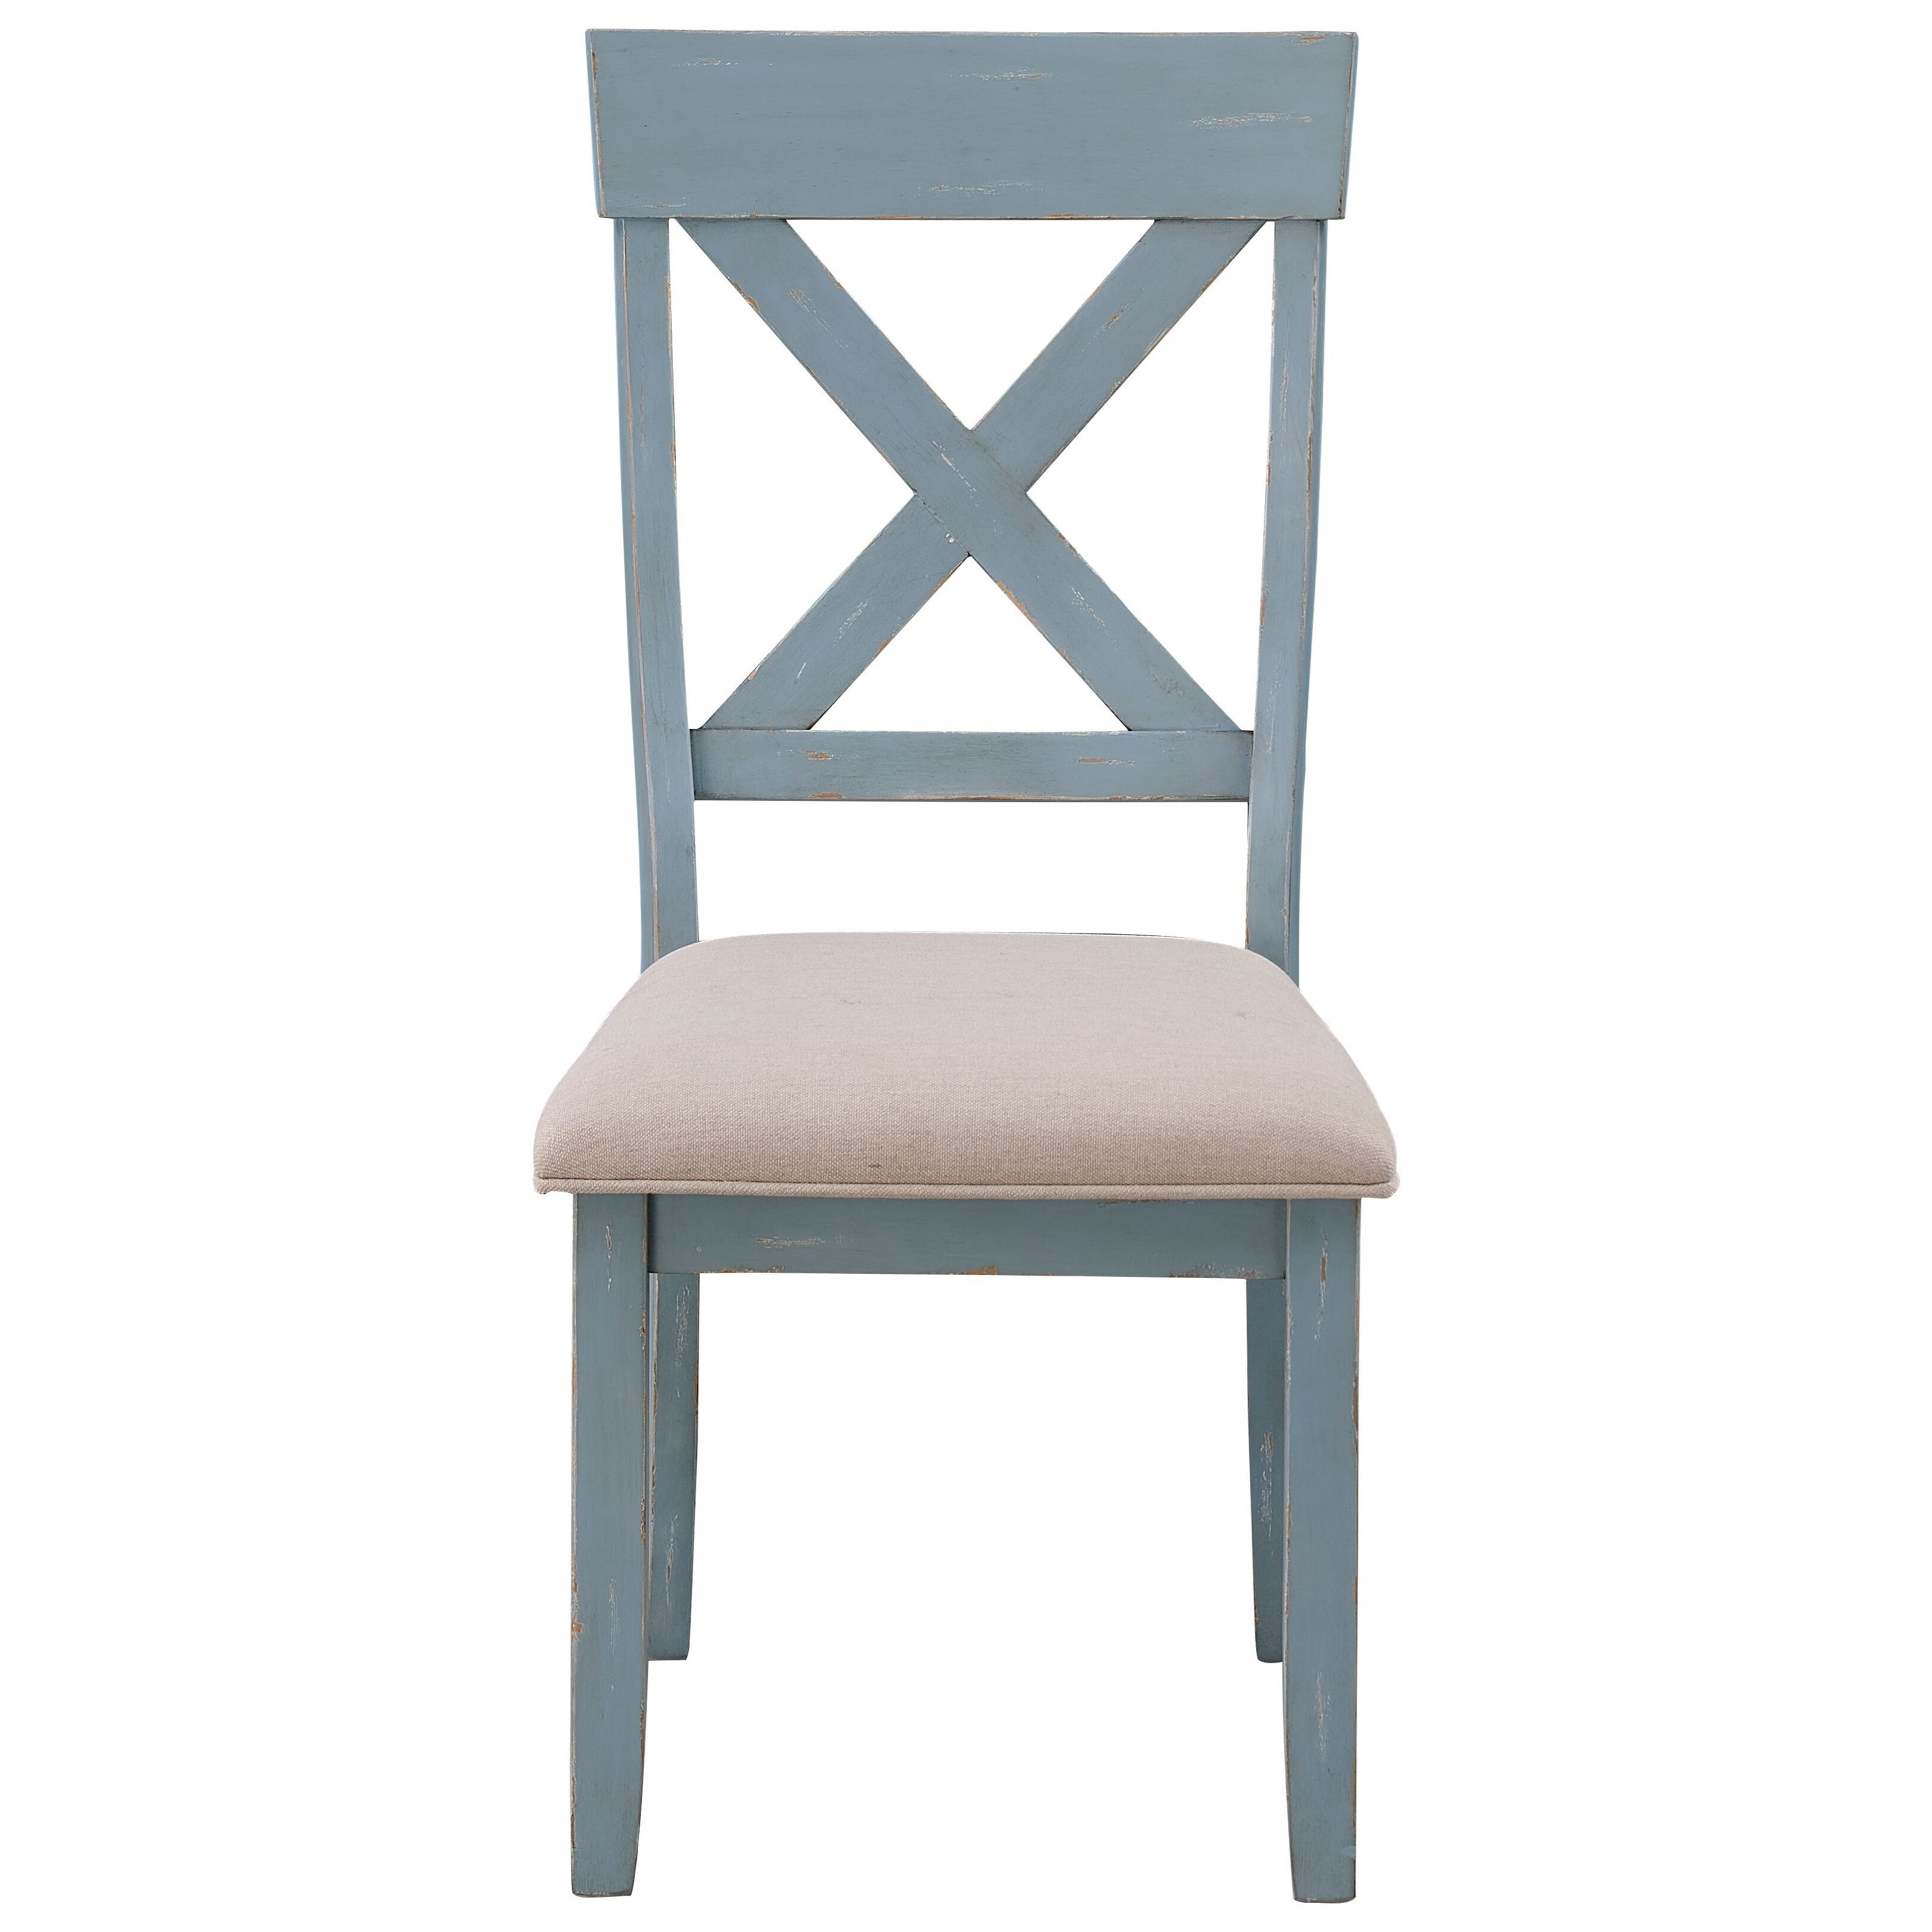 Dining Chair with Upholstered Seat